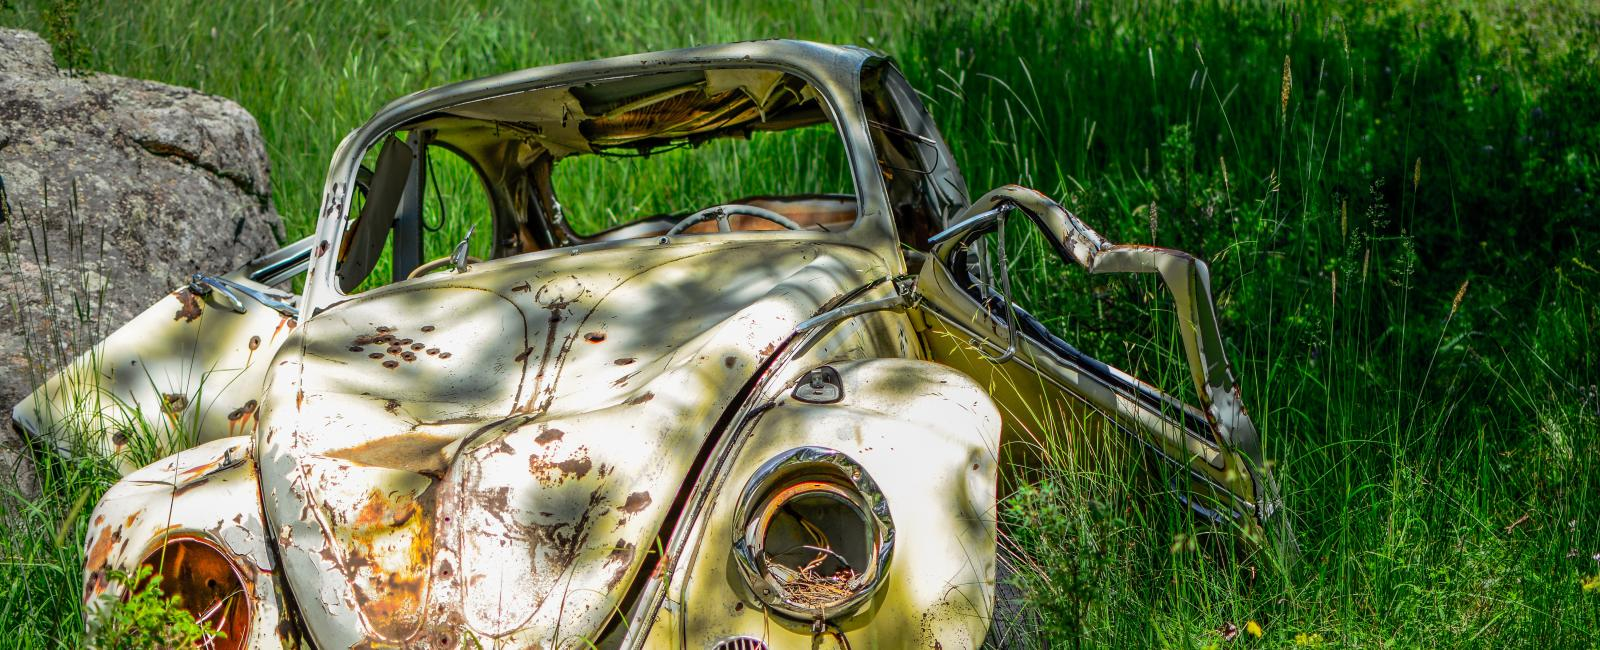 Abandoned Volkswagon beetle